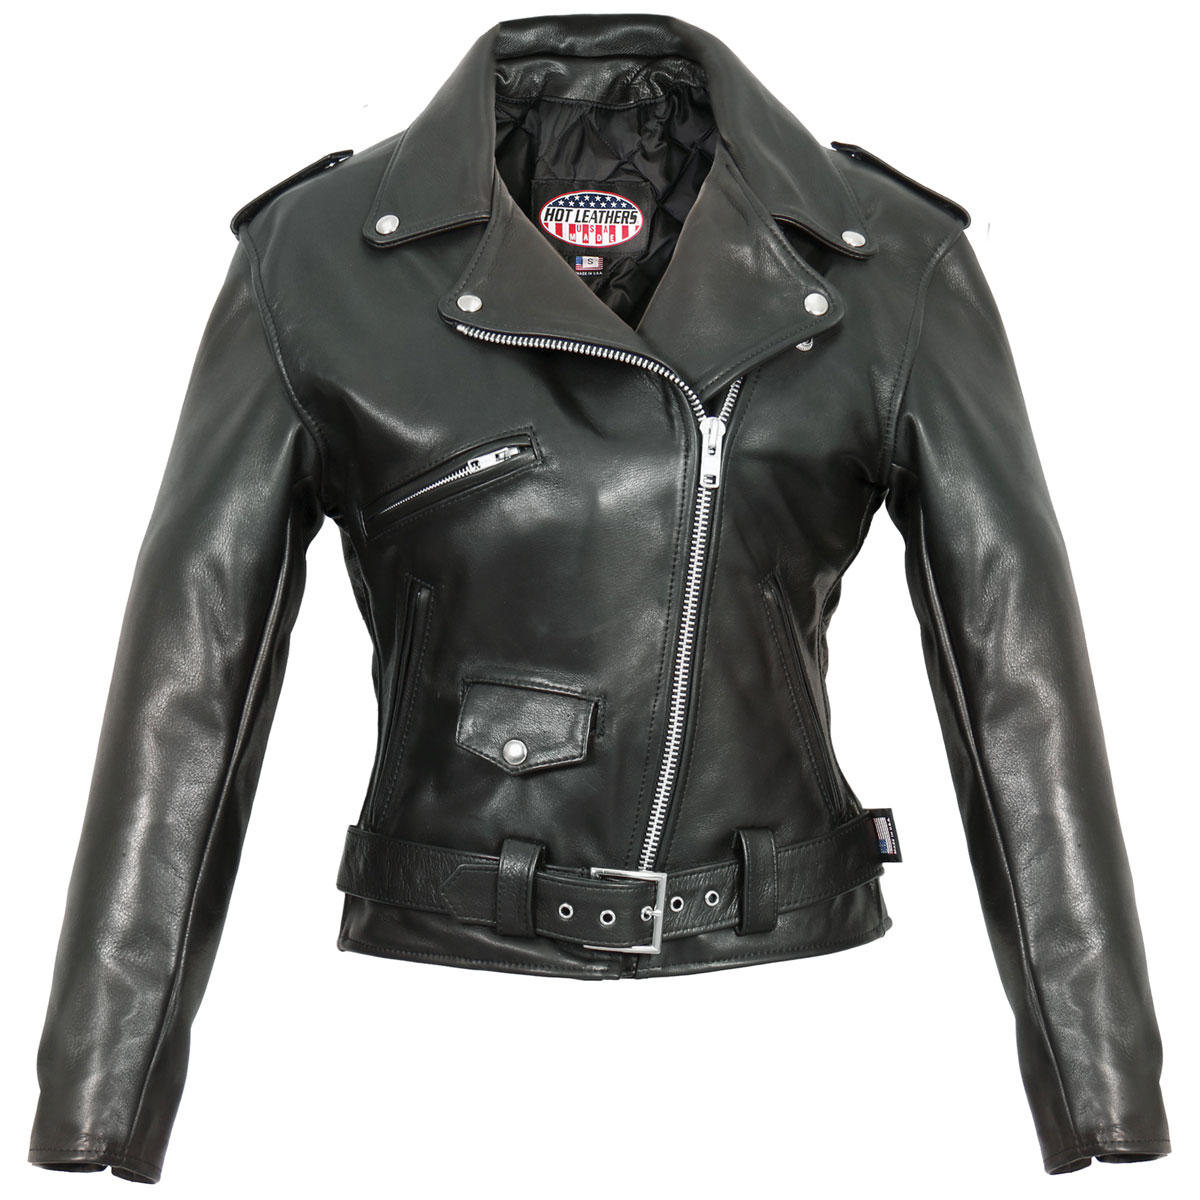 Hot Leathers Women's USA Made Classic Black Leather Jacket